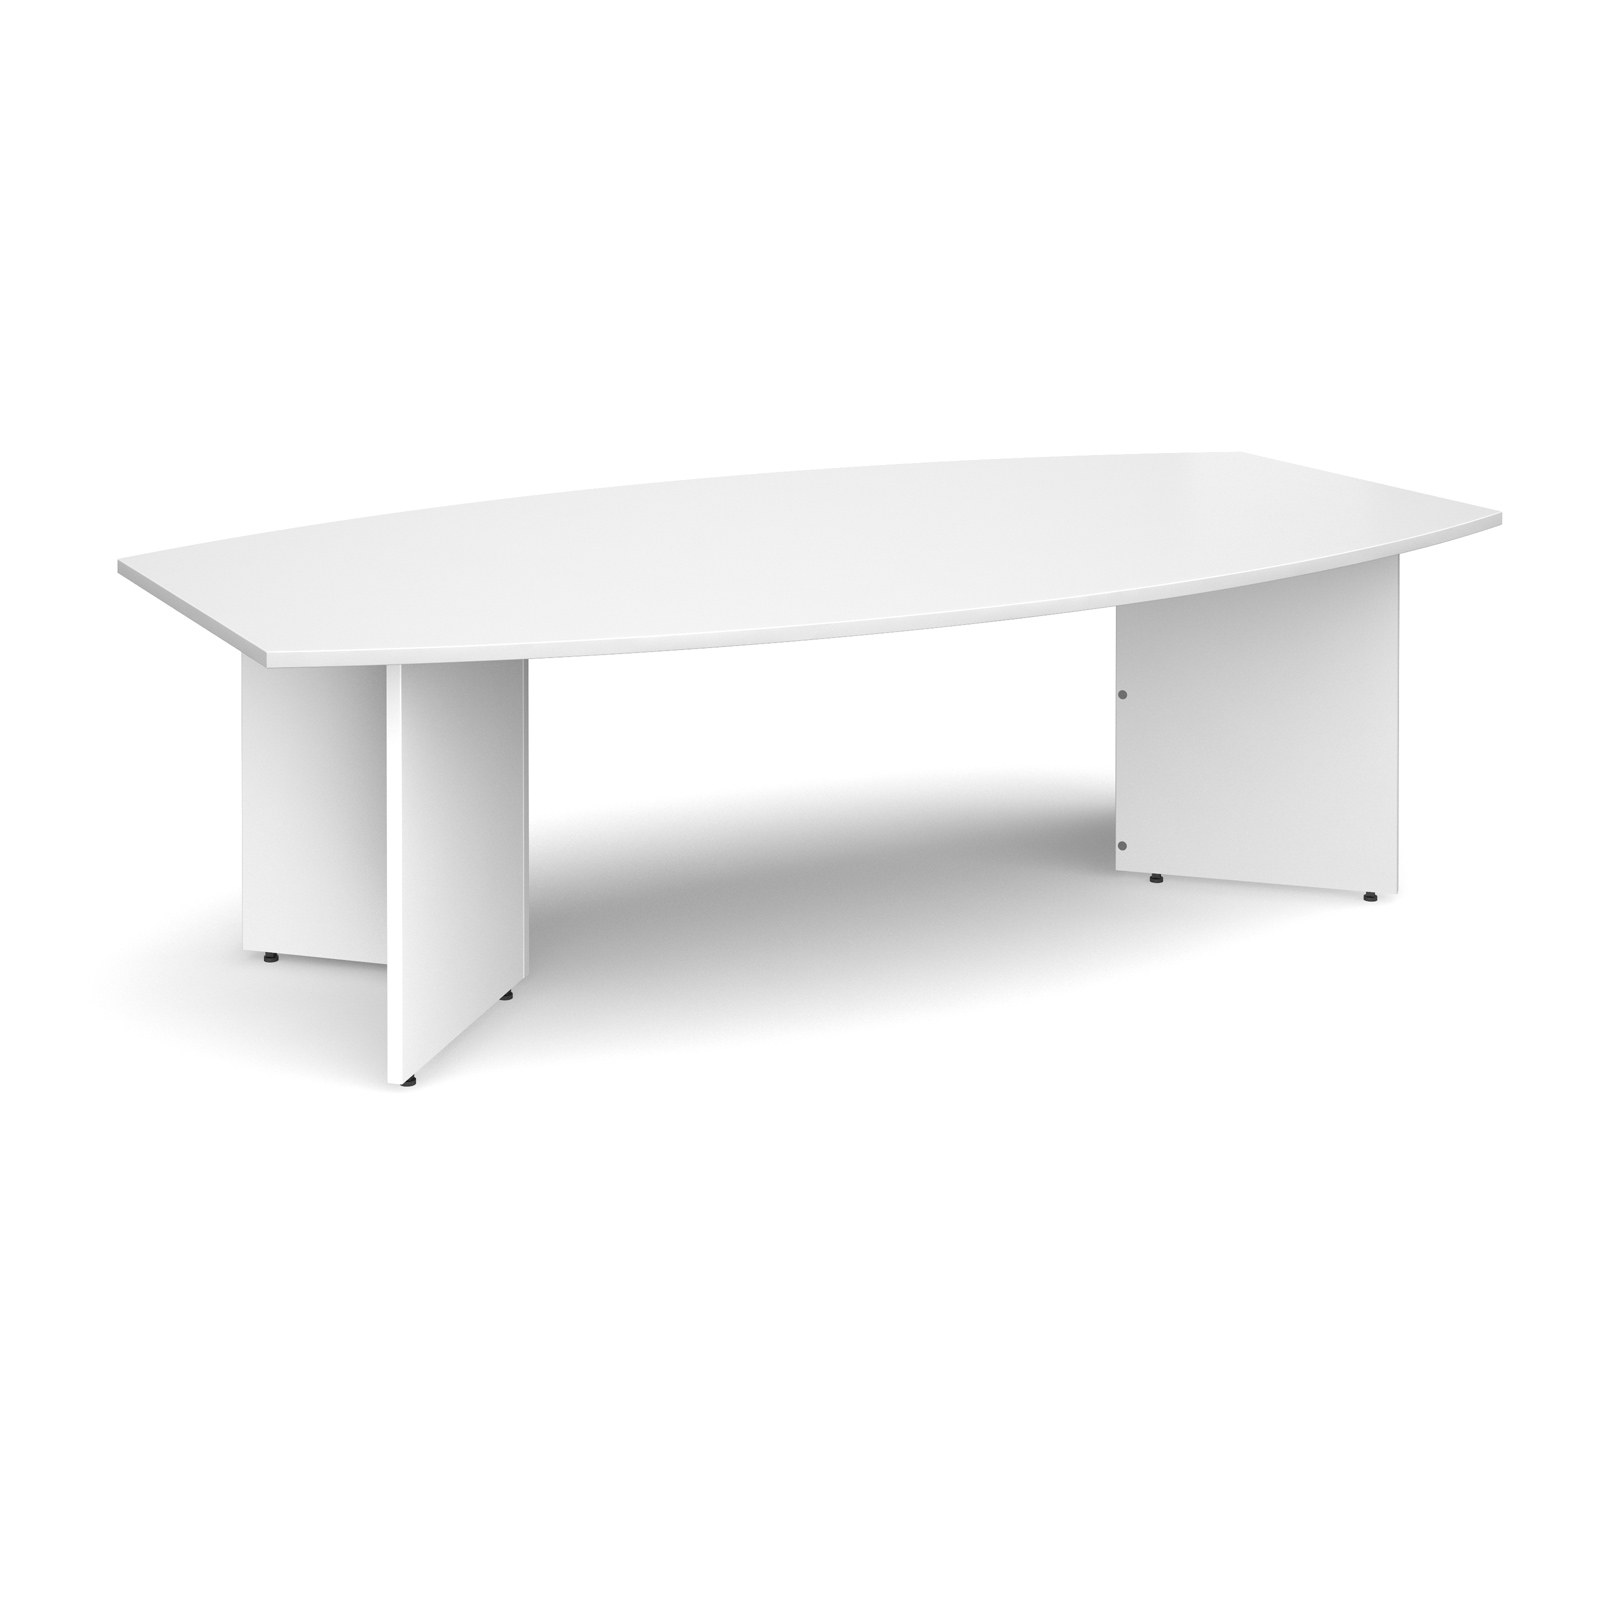 Dams Arrow Head Boardroom Table - Radial